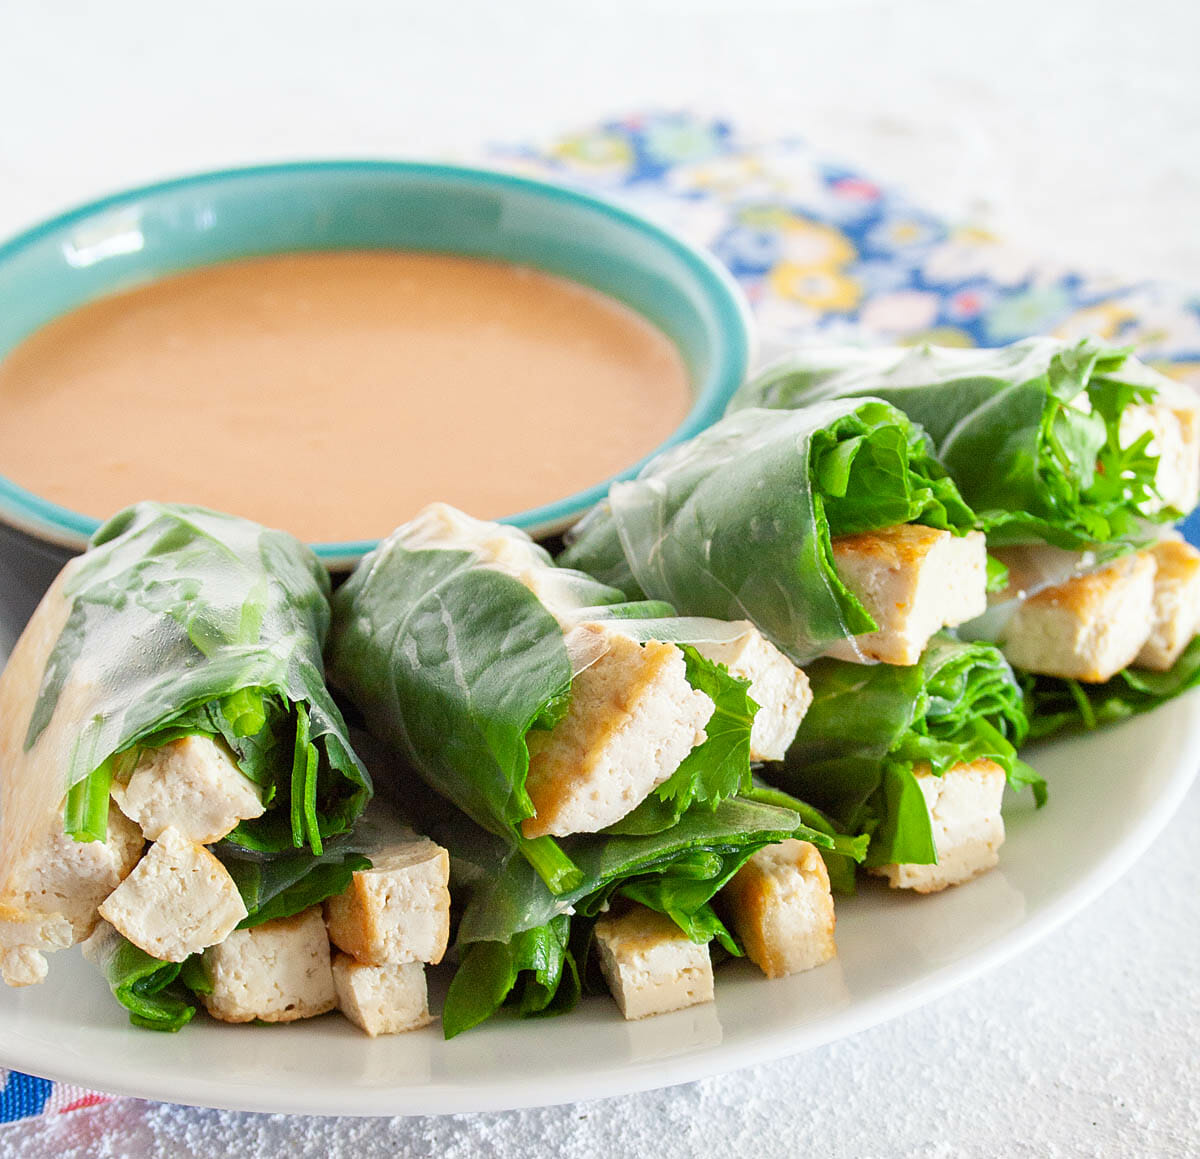 Tofu Spring Rolls with Peanut Dipping Sauce on plate close up.